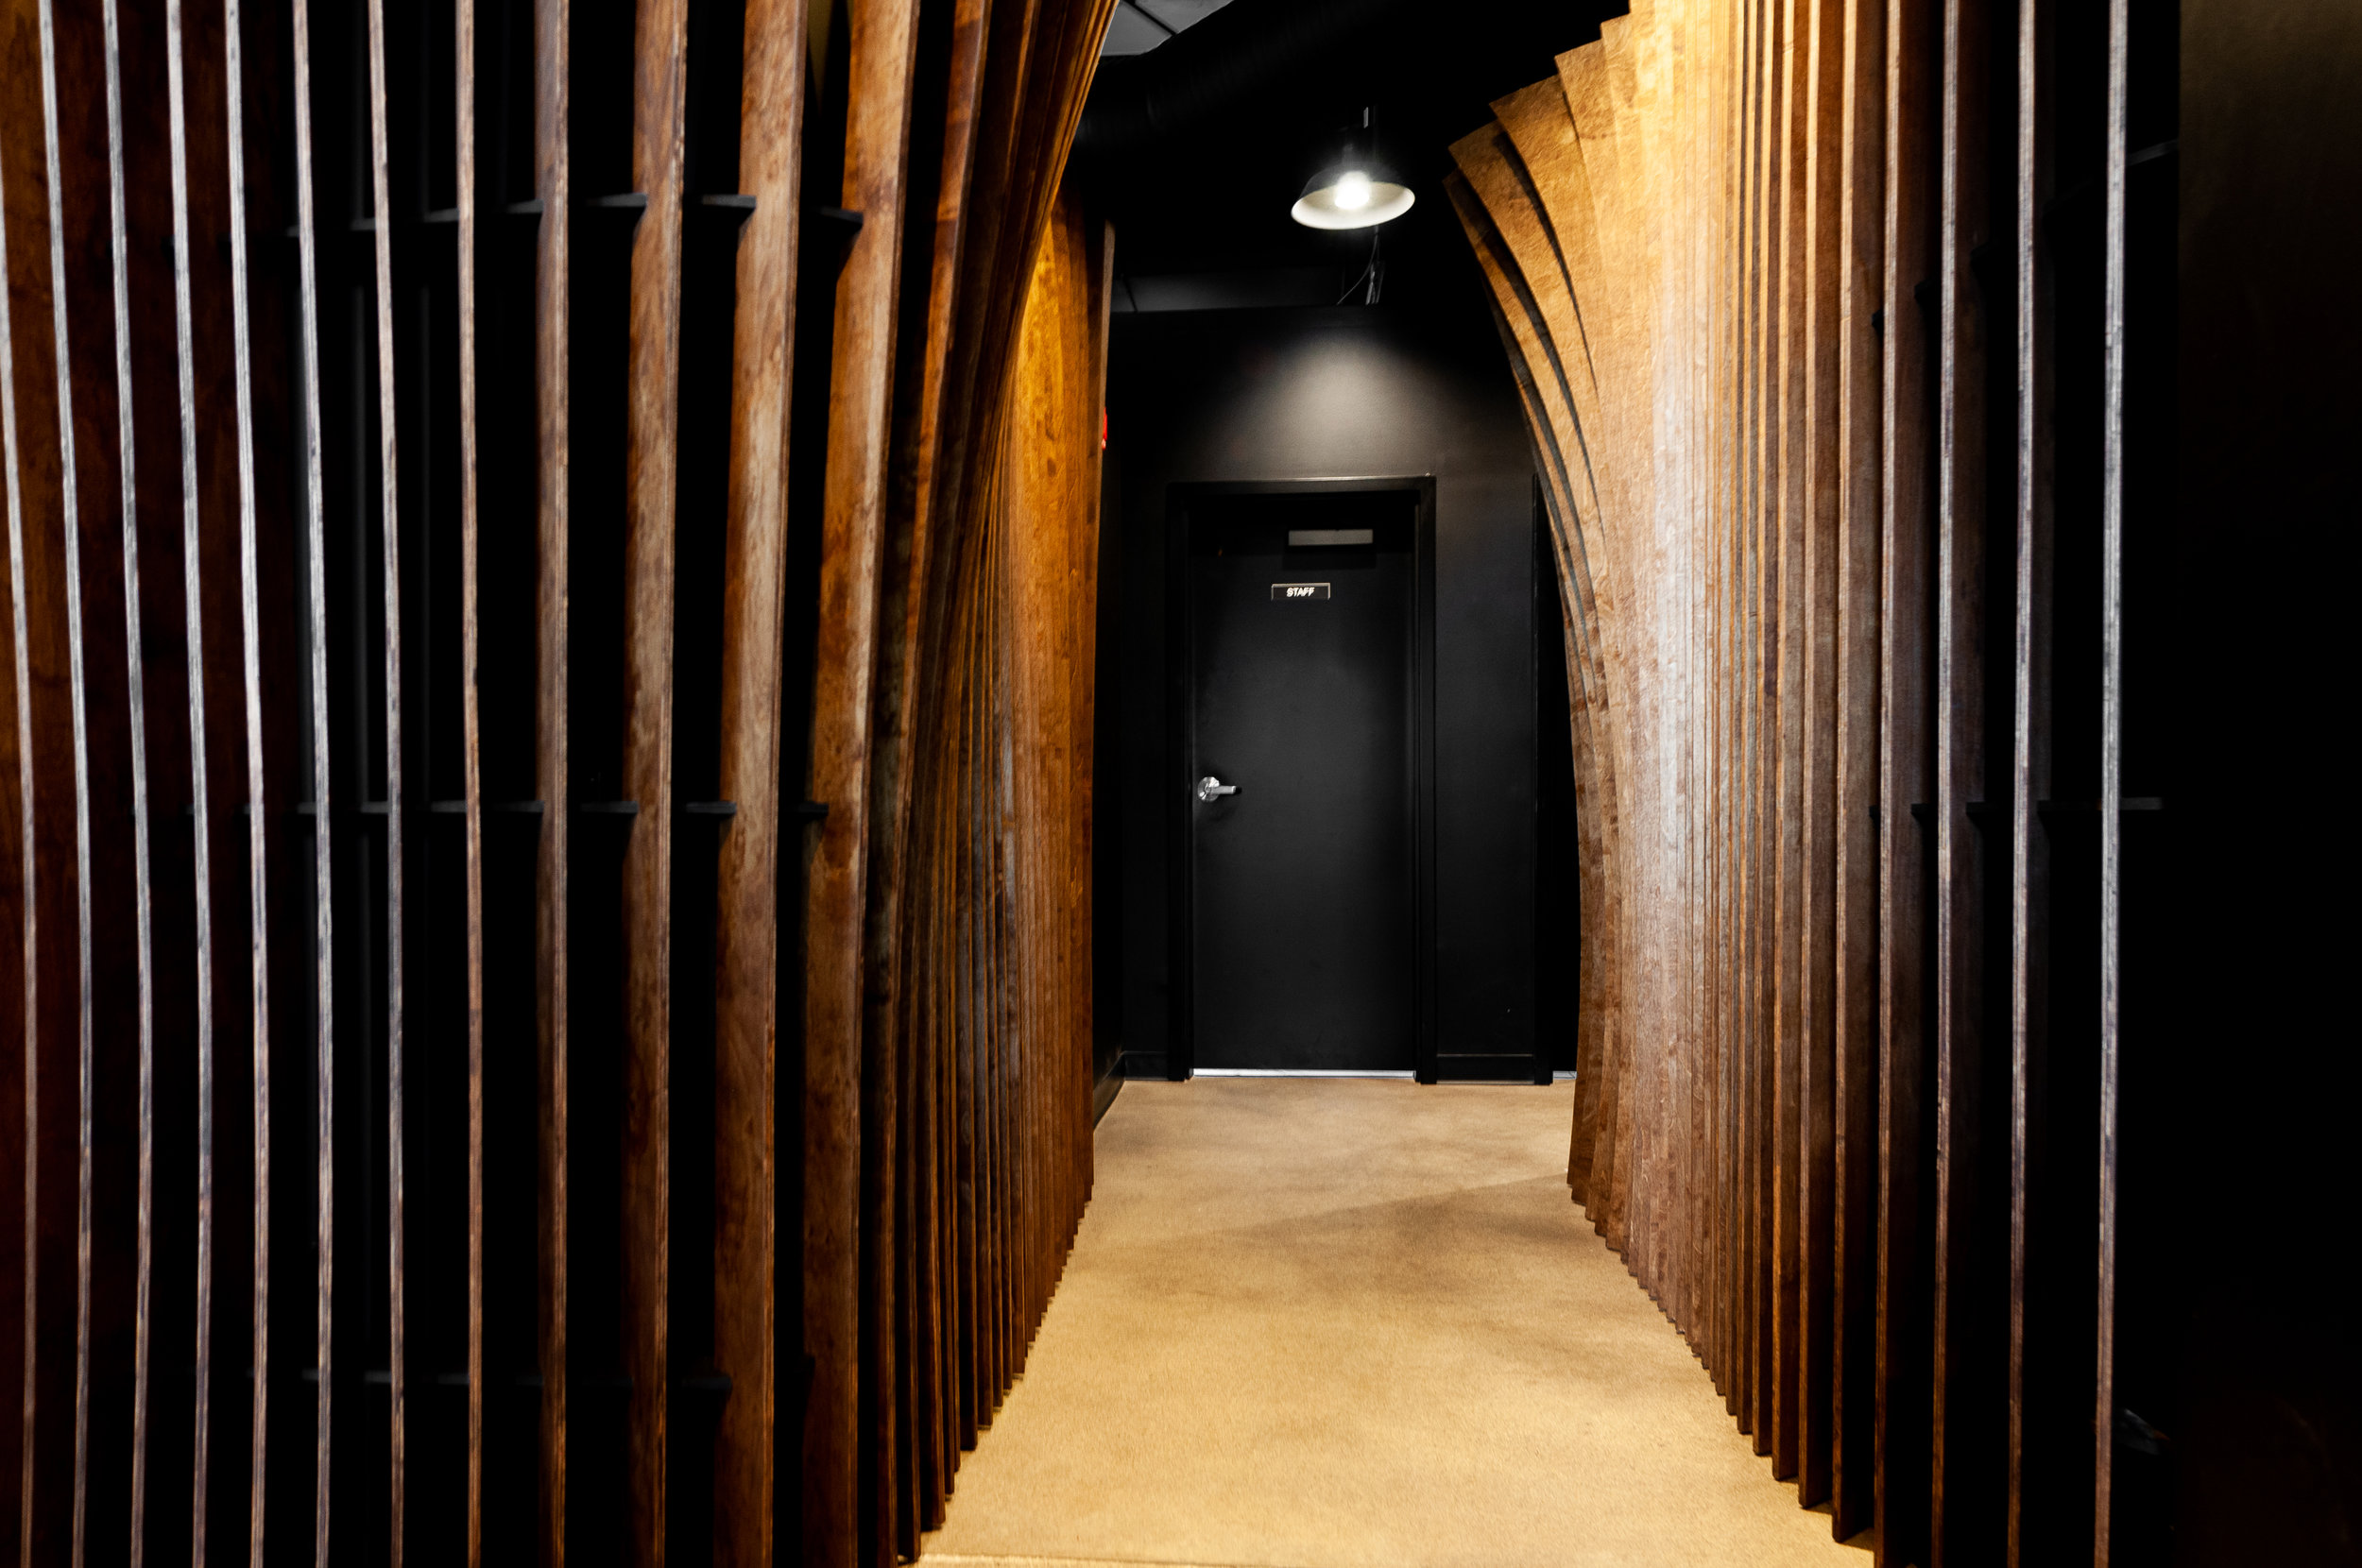 This feature hallway installation at Cera Korean Restaurant was designed to enhance the experience of diners as they make their way to the restrooms.